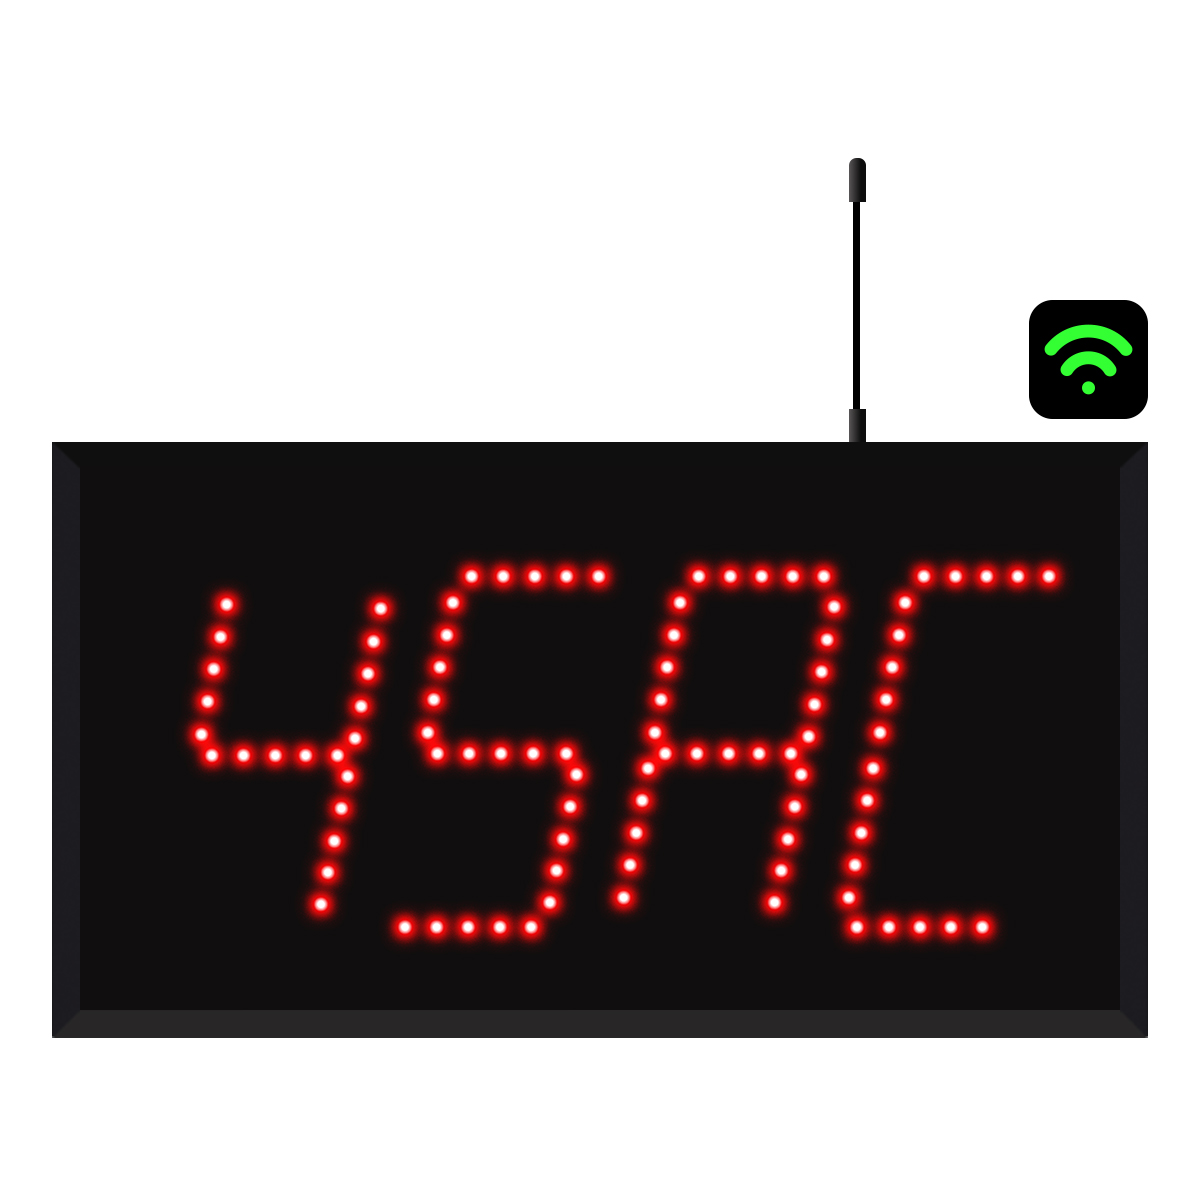 4-Digit WiFi Alpha Numeric Visual-Pager® Display